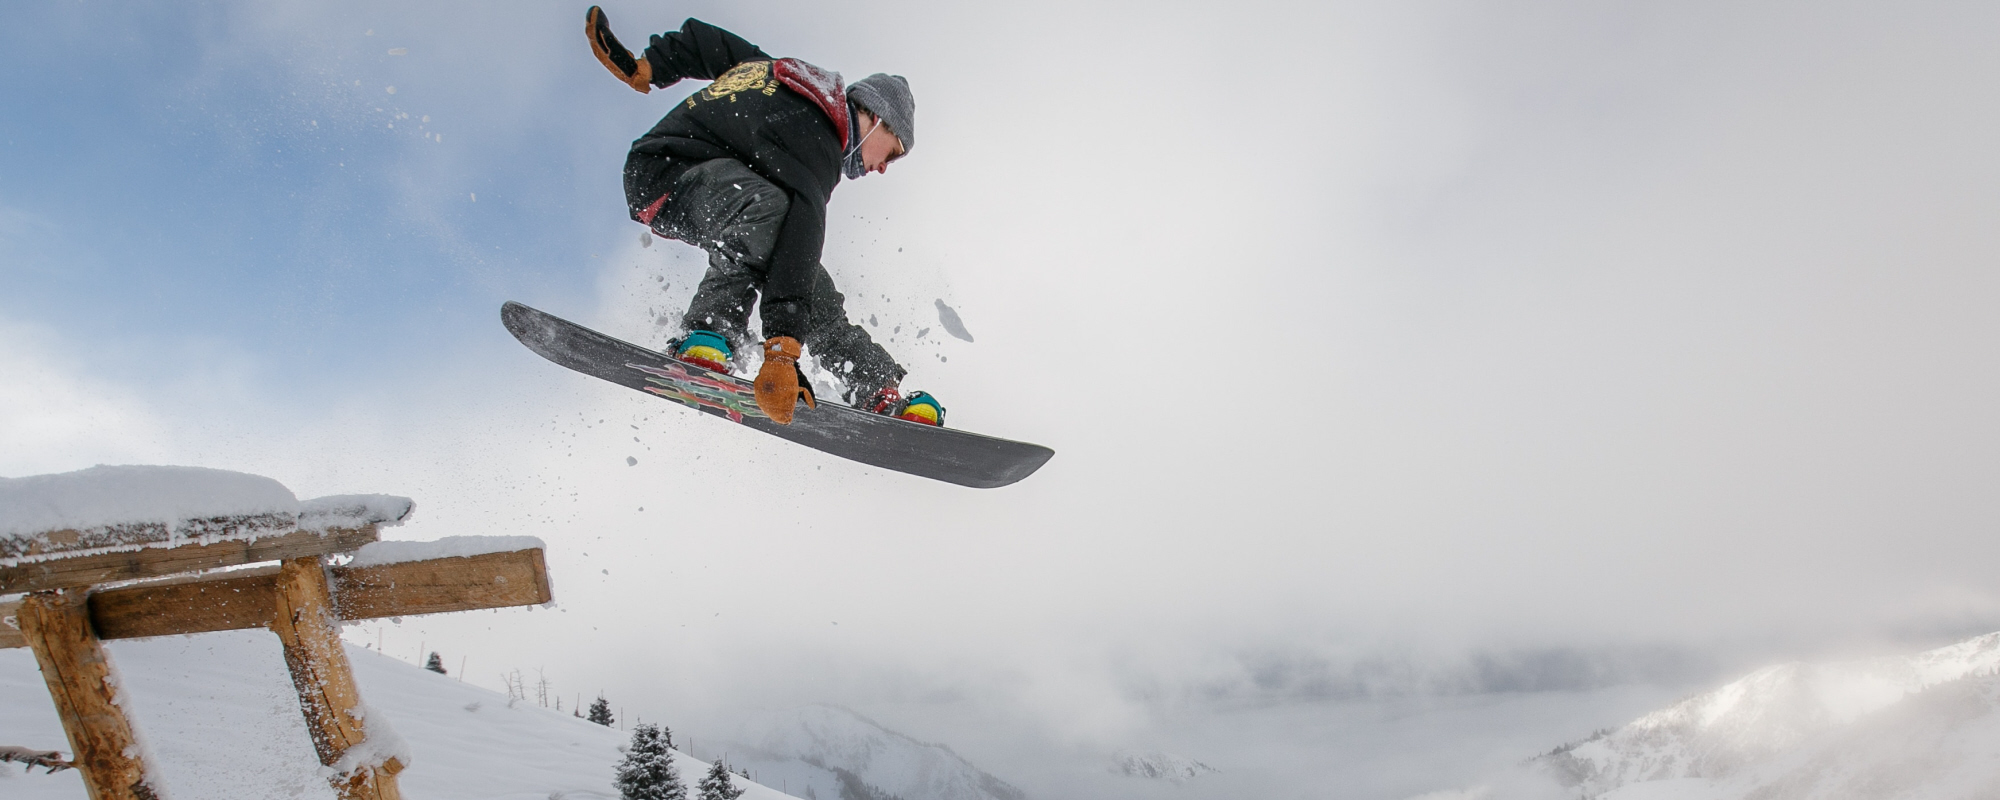 Top 5 freestyle snowboarders